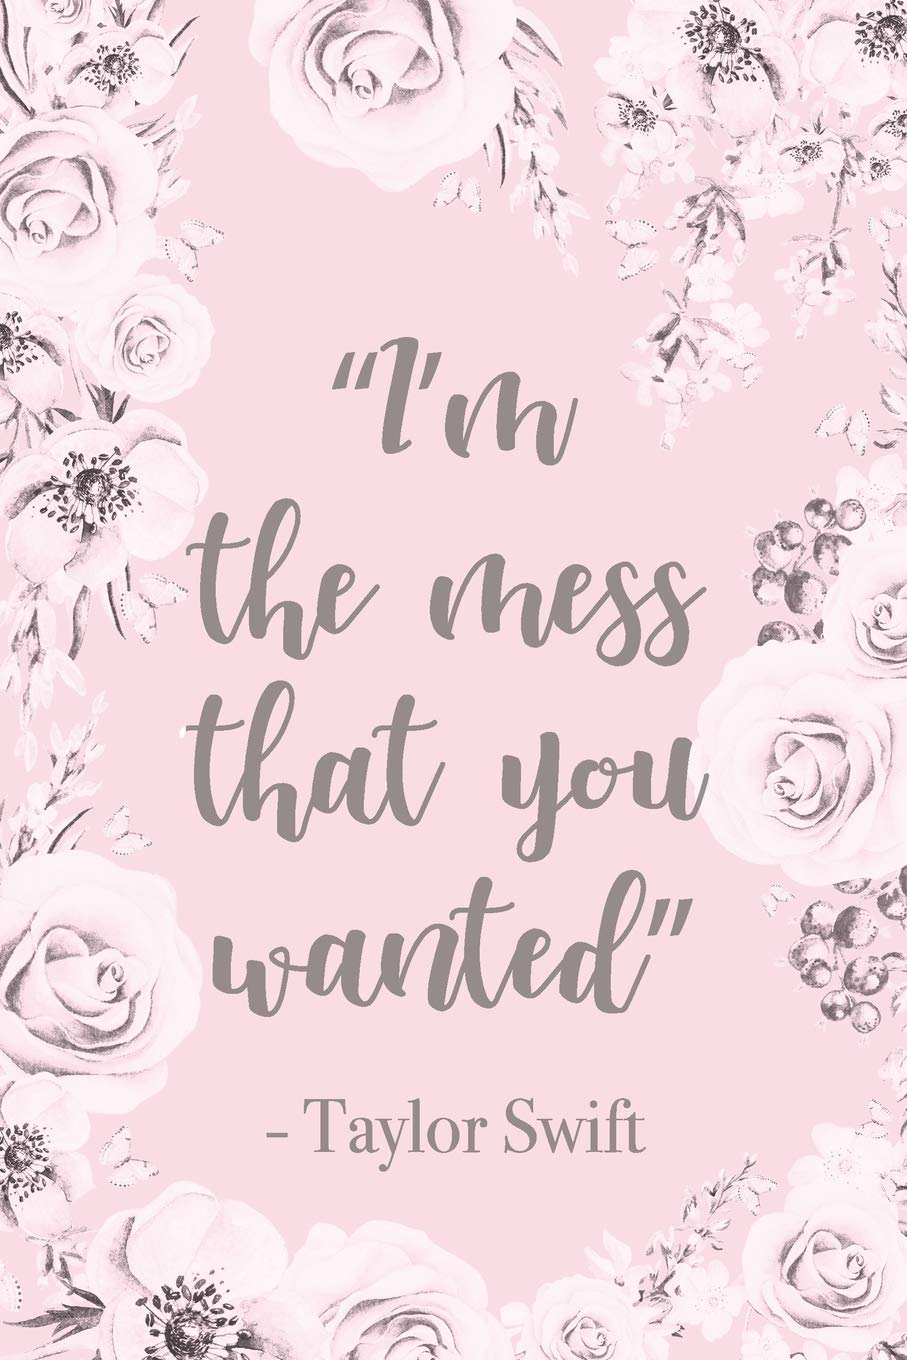 Taylor Swift Lyric Quotes Love Quotes